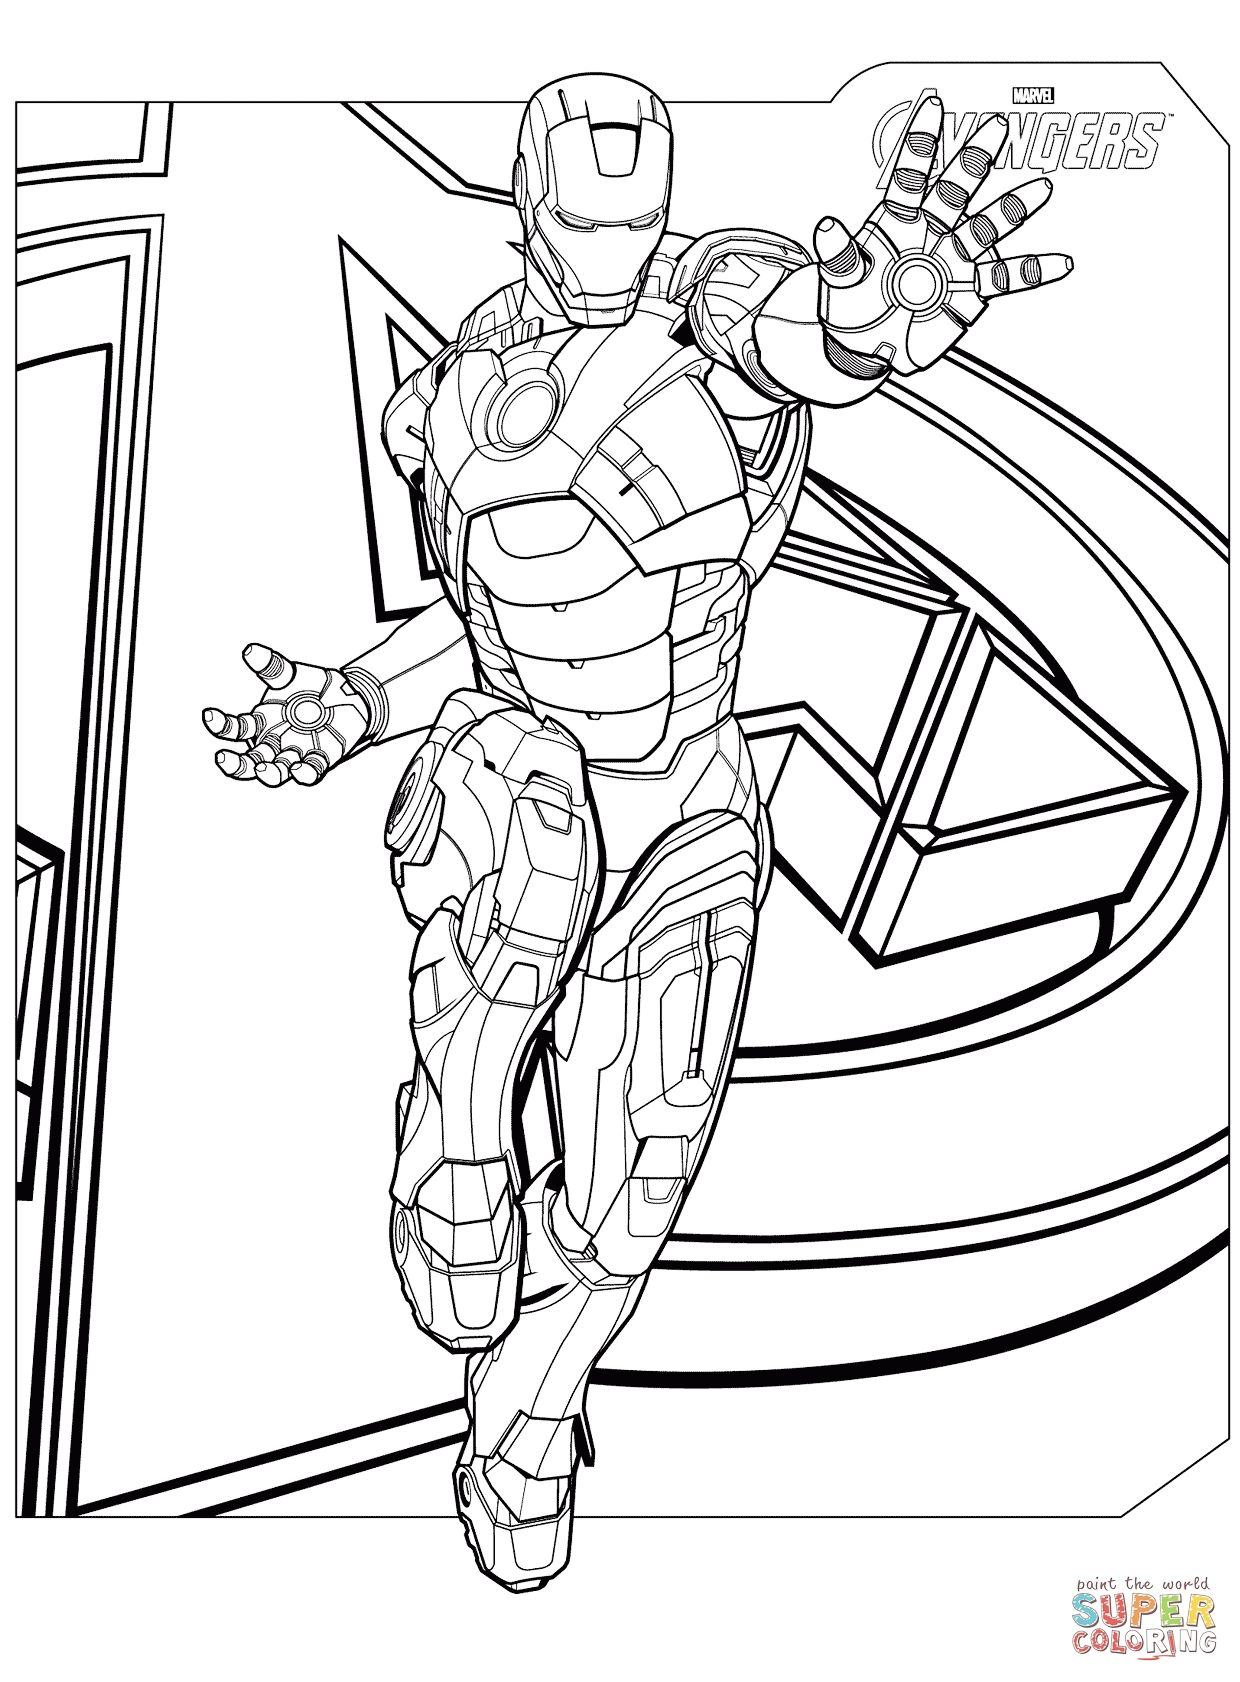 Awesome Avengers Pictures To Color To Color Coloring Pages For